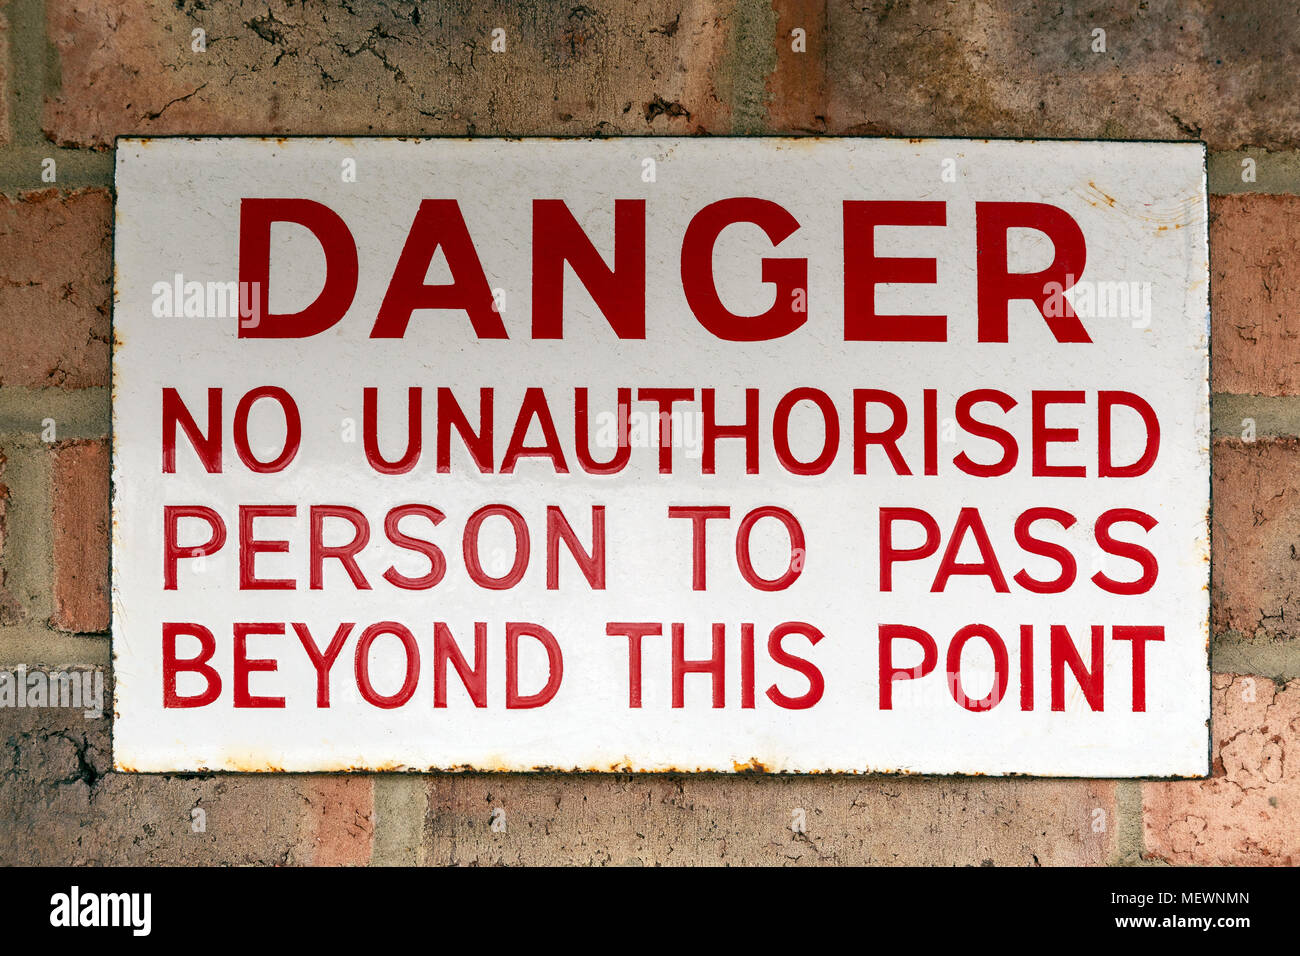 Warning Sign - No Unauthorised Access - Stock Image